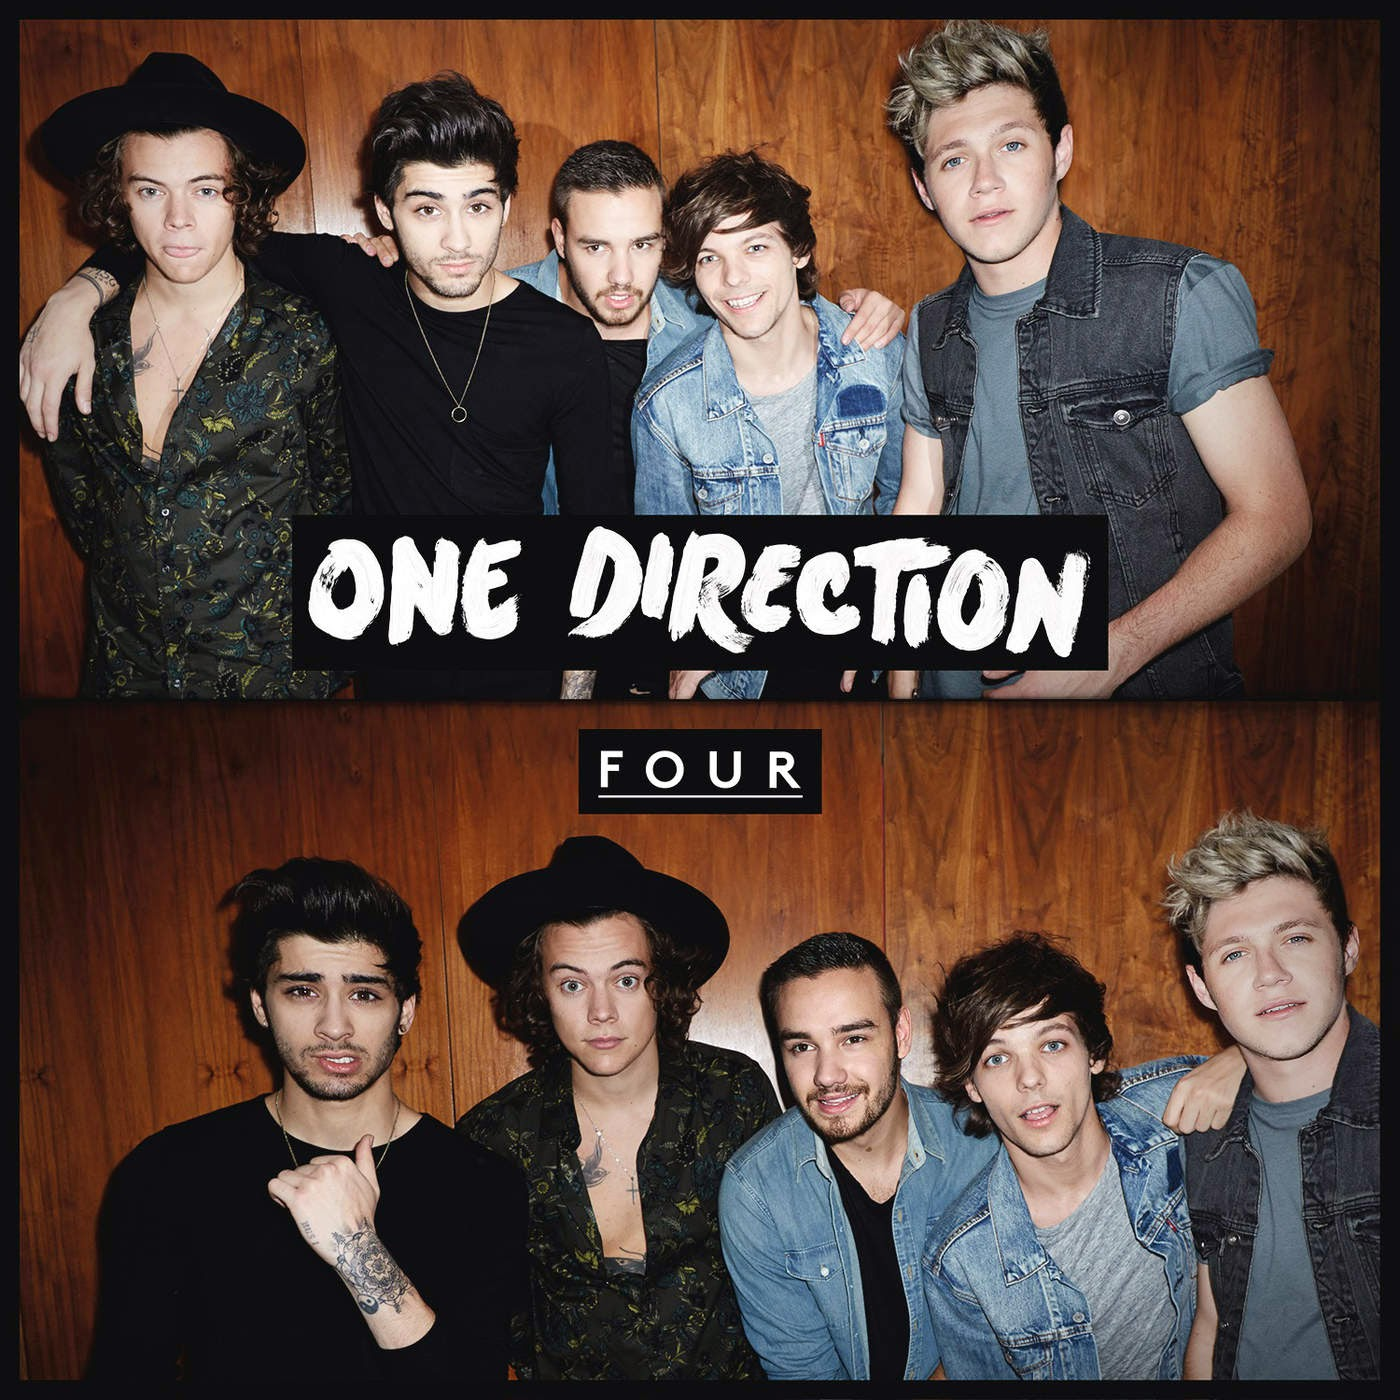 one direction four album m4a download